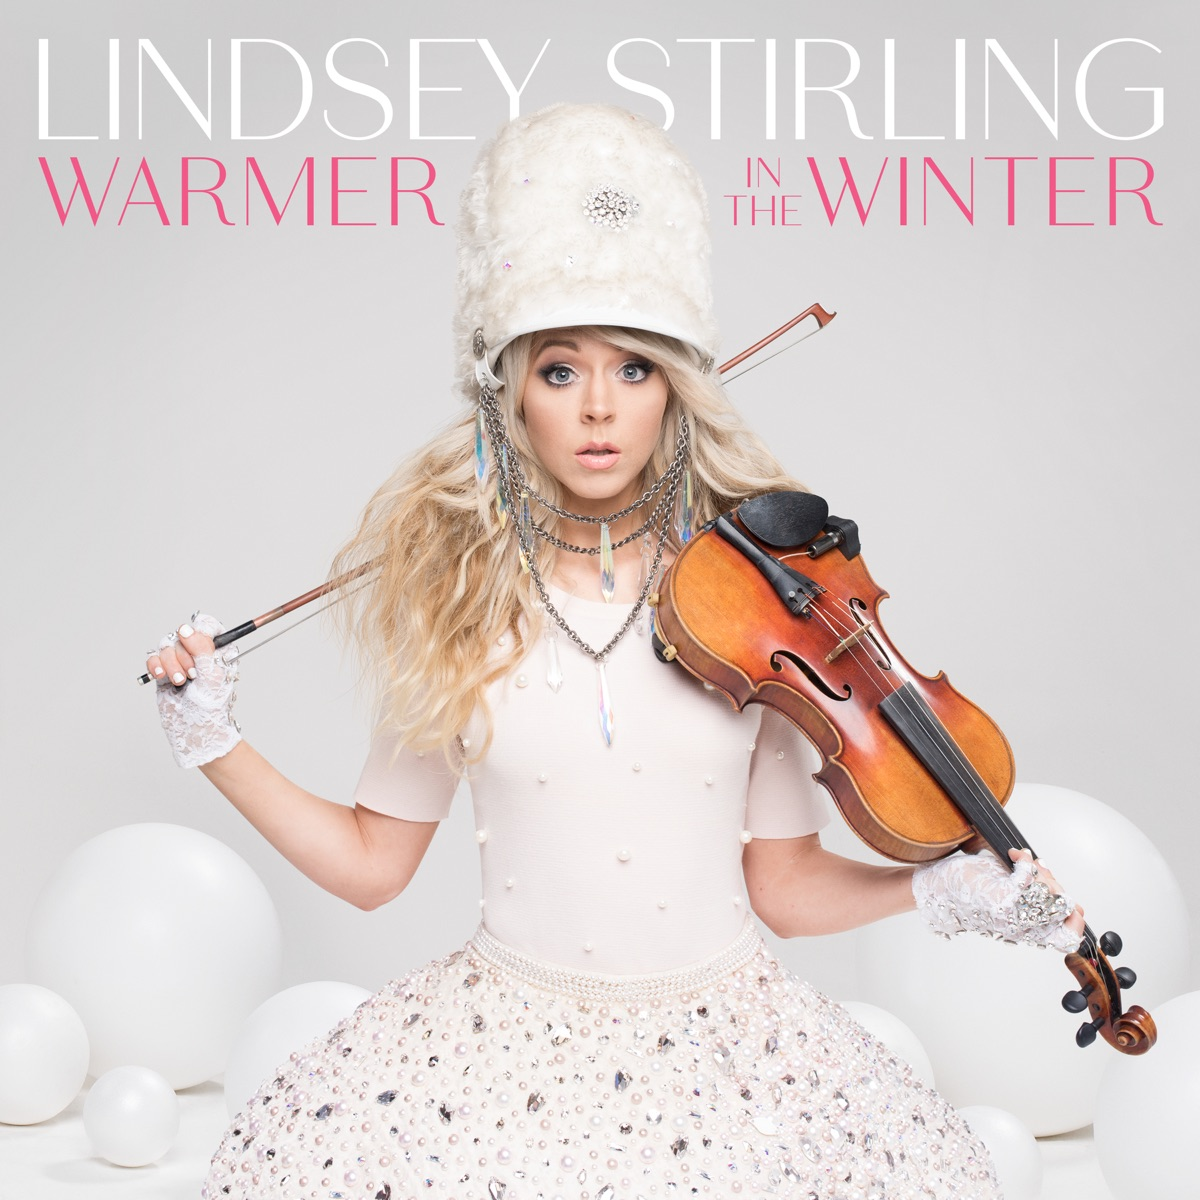 Warmer in the Winter Lindsey Stirling CD cover